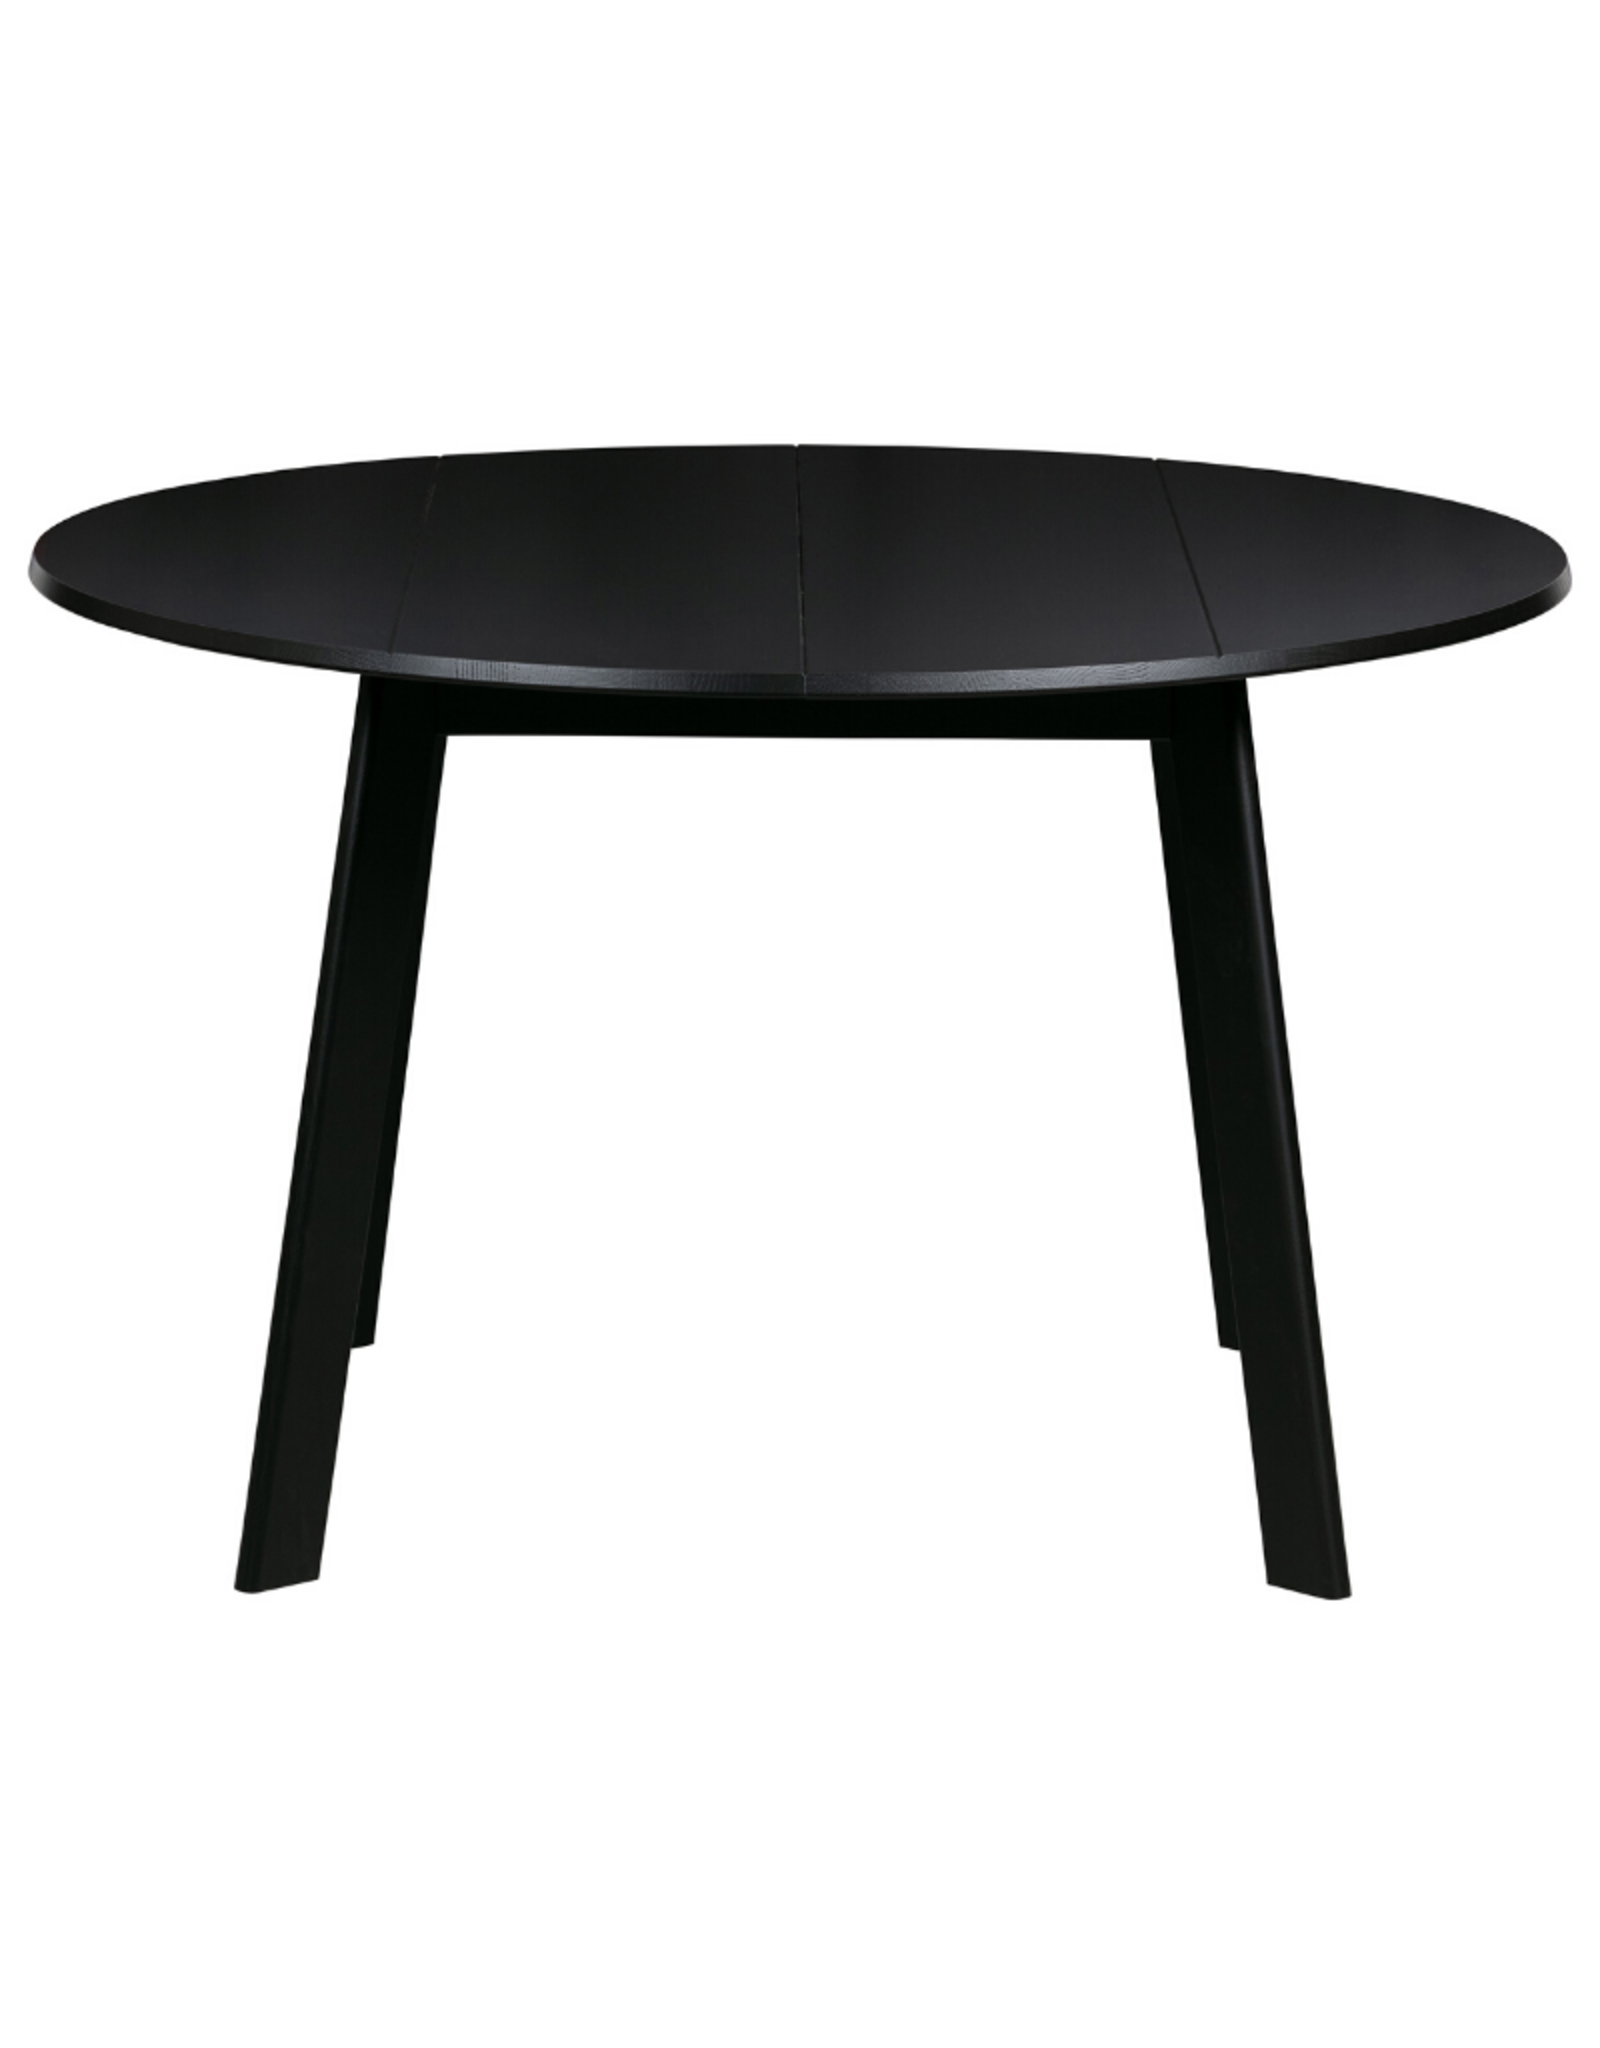 Eettafel Essen Rond - Black Night